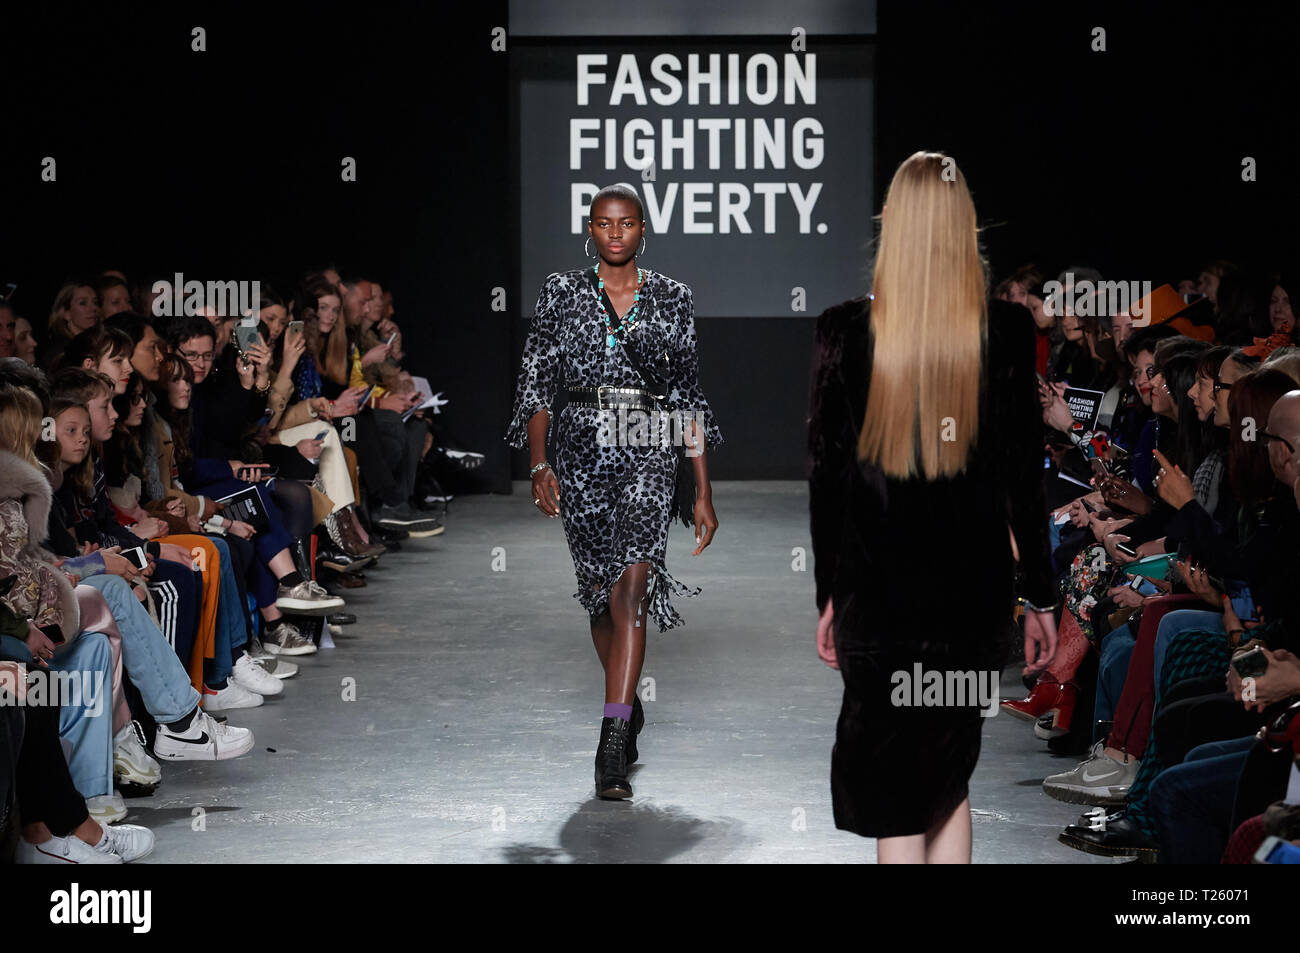 Models walking on the catwalk during the Fashion Fighting for Poverty for Oxfam Catwalk show held at Ambika P3, University of Westminster, 35 Marylebo - Stock Image